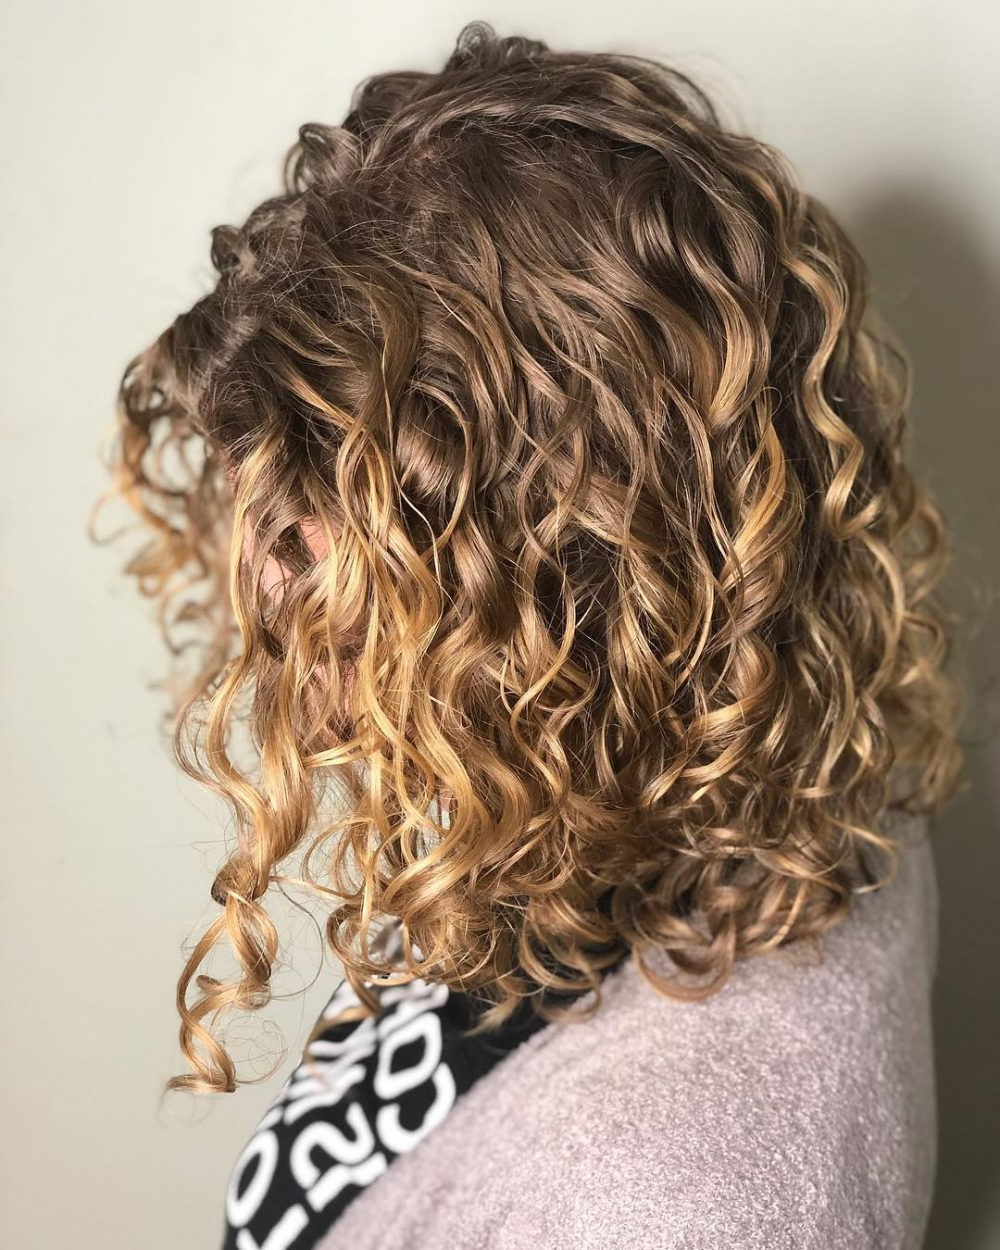 30 Gorgeous Medium Length Curly Hairstyles For Women In 2019 For 2018 Medium Hairstyles Curly (Gallery 3 of 20)